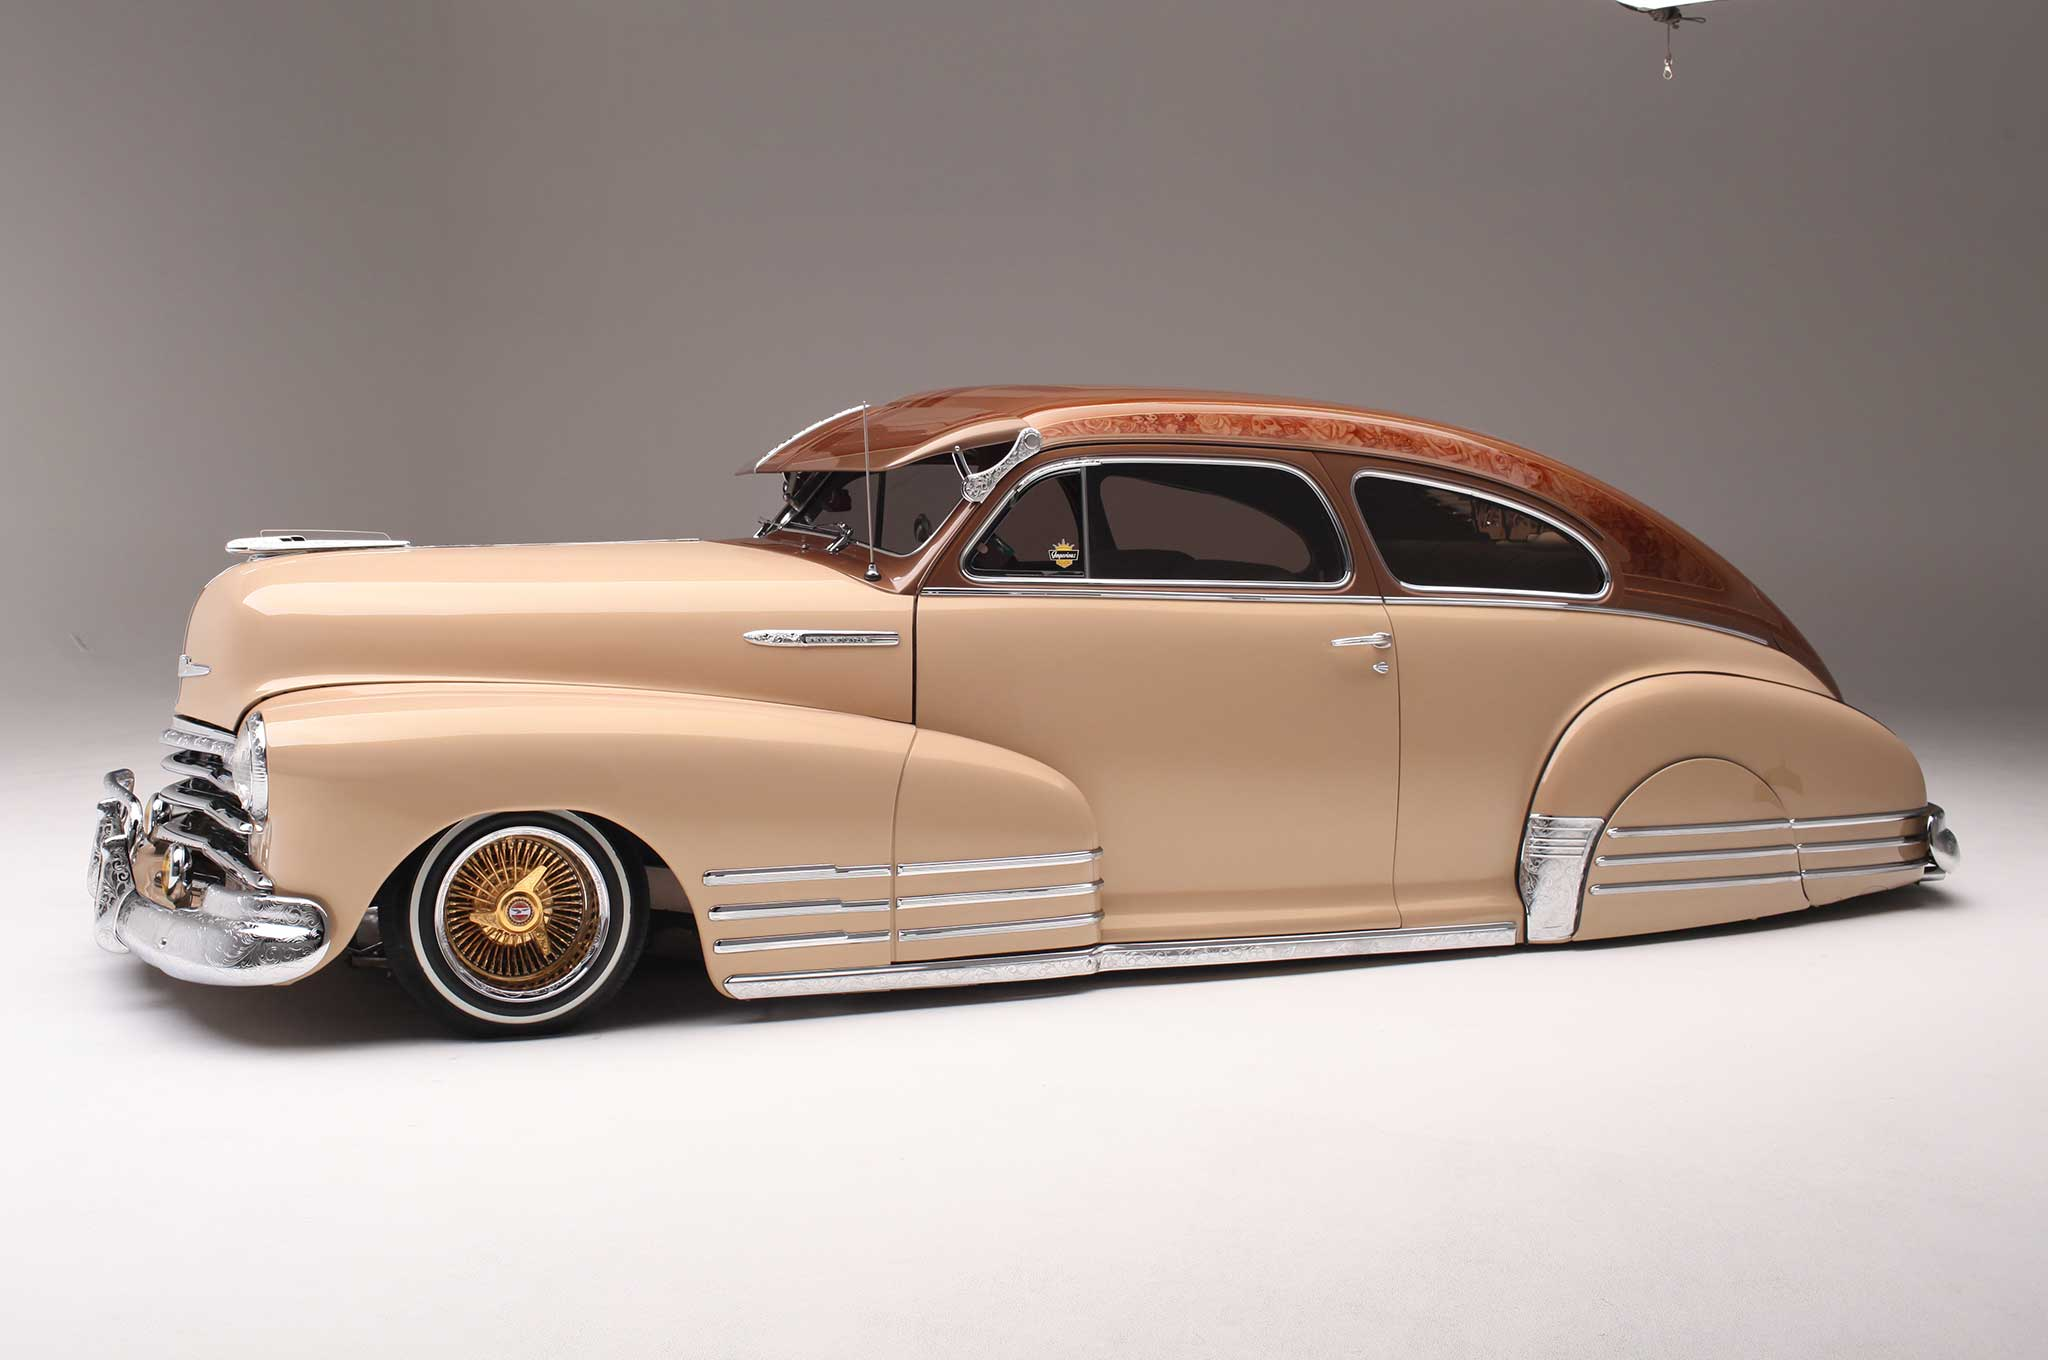 1947 Chevrolet Fleetline Top Of The Line Lowrider